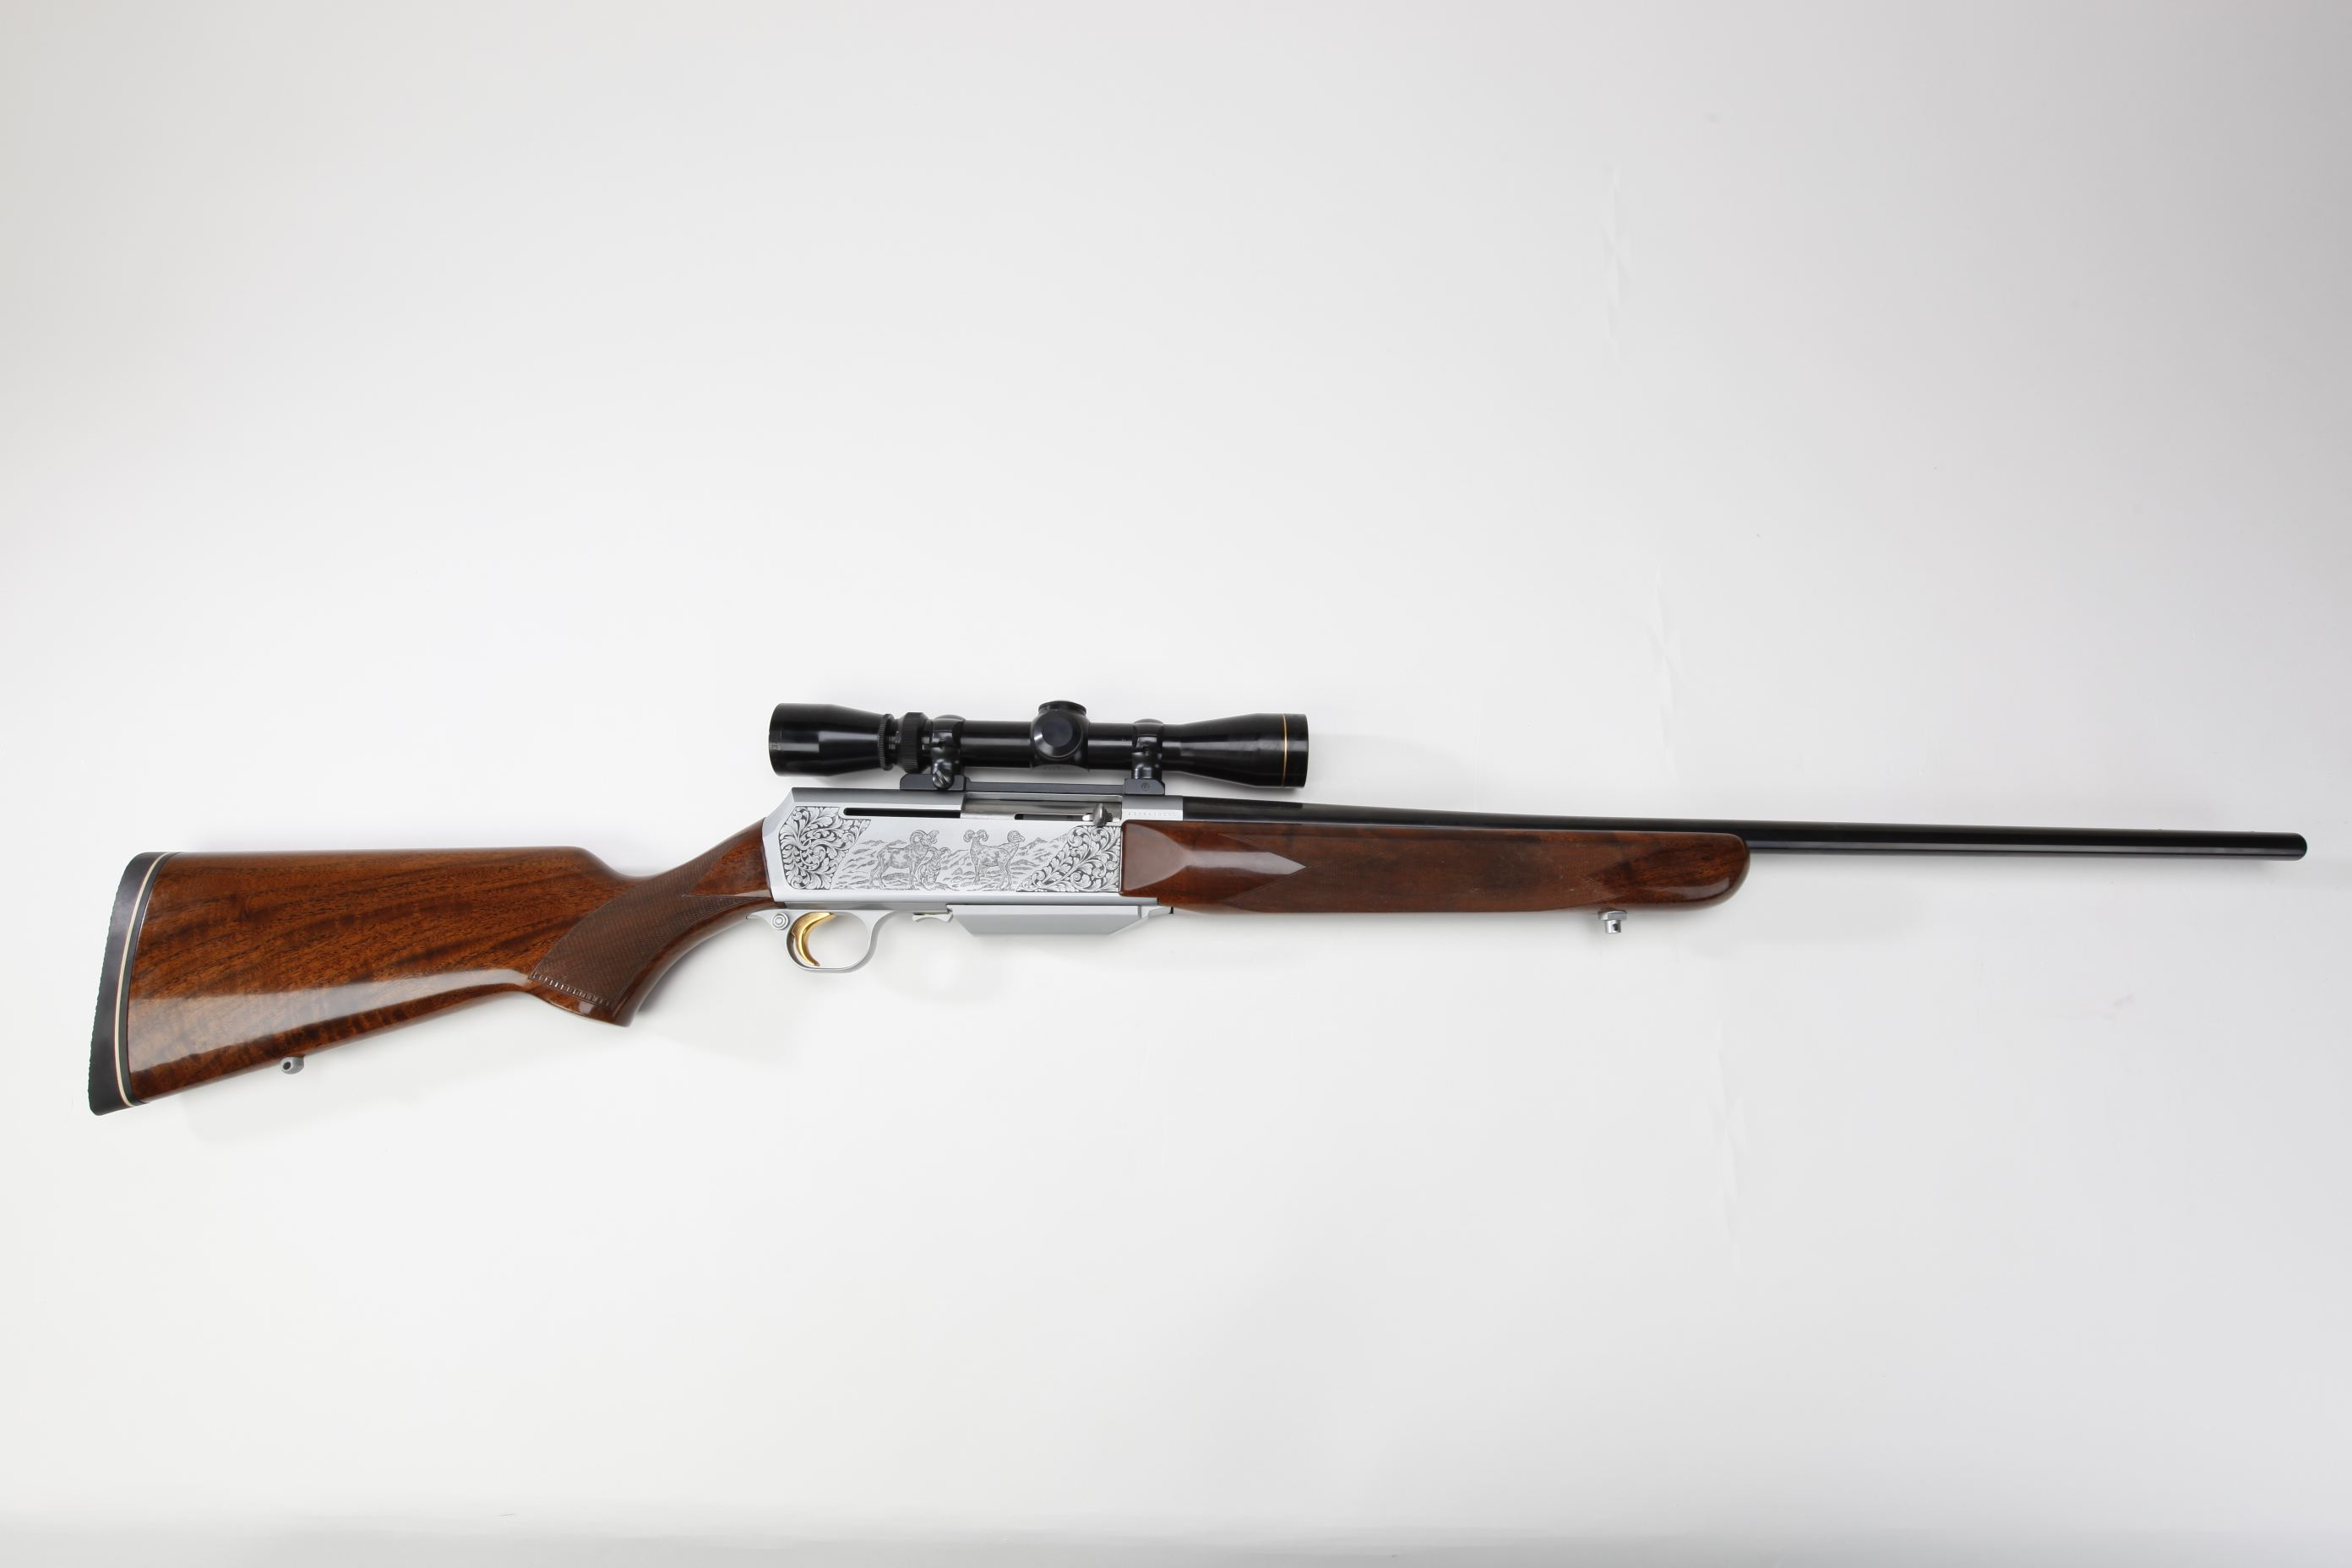 Browning BAR Semi Automatic Rifle